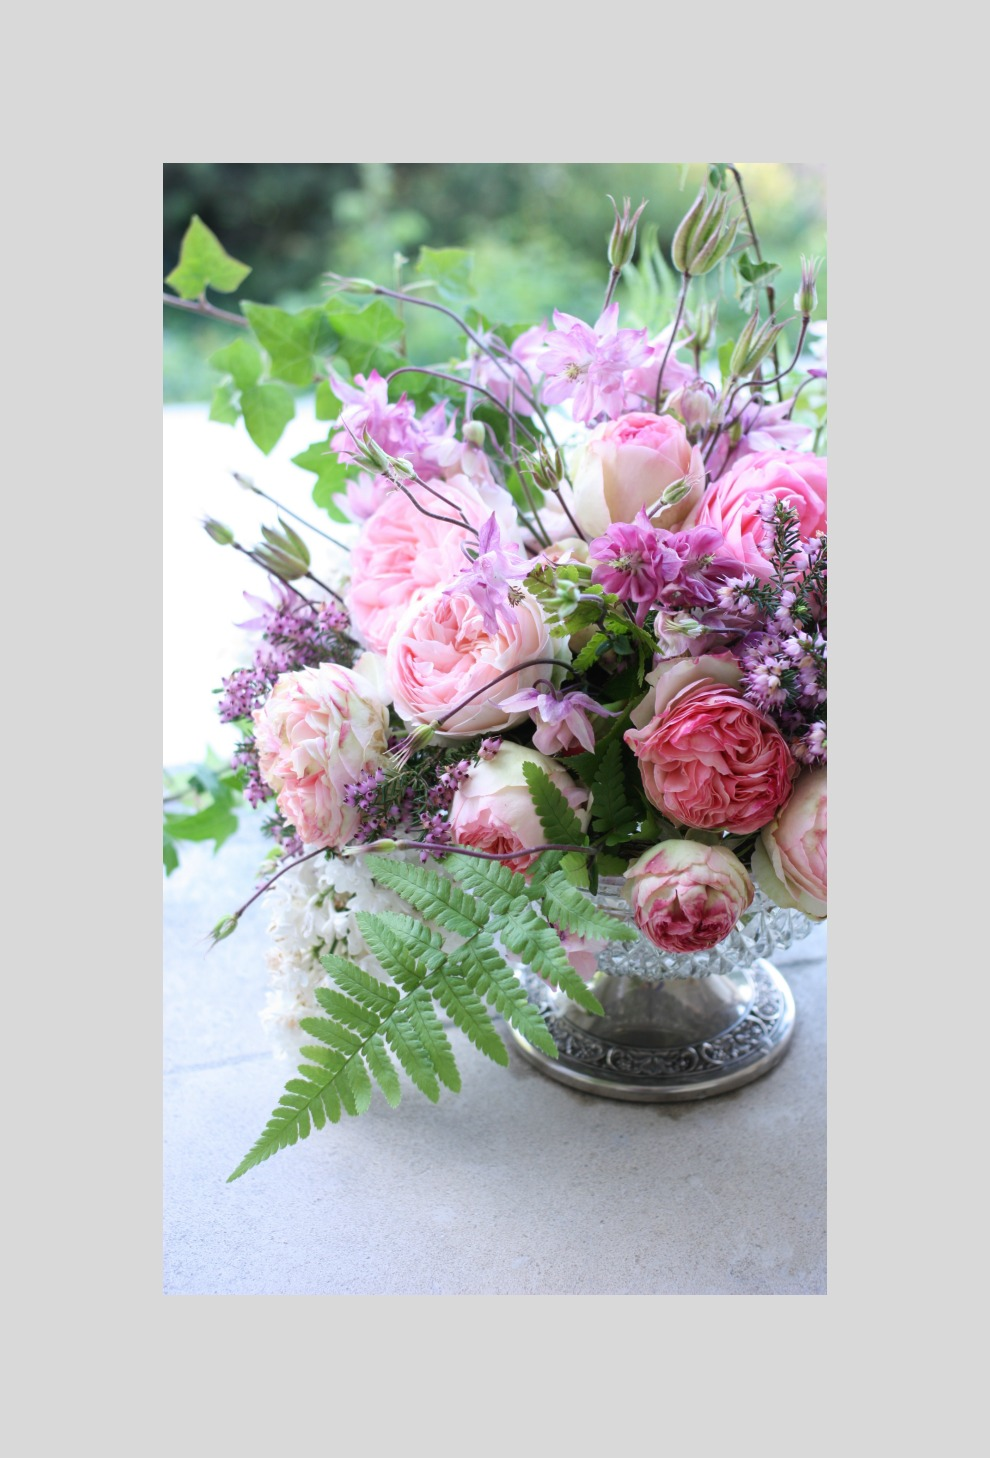 fern leaf in a pink bouquet